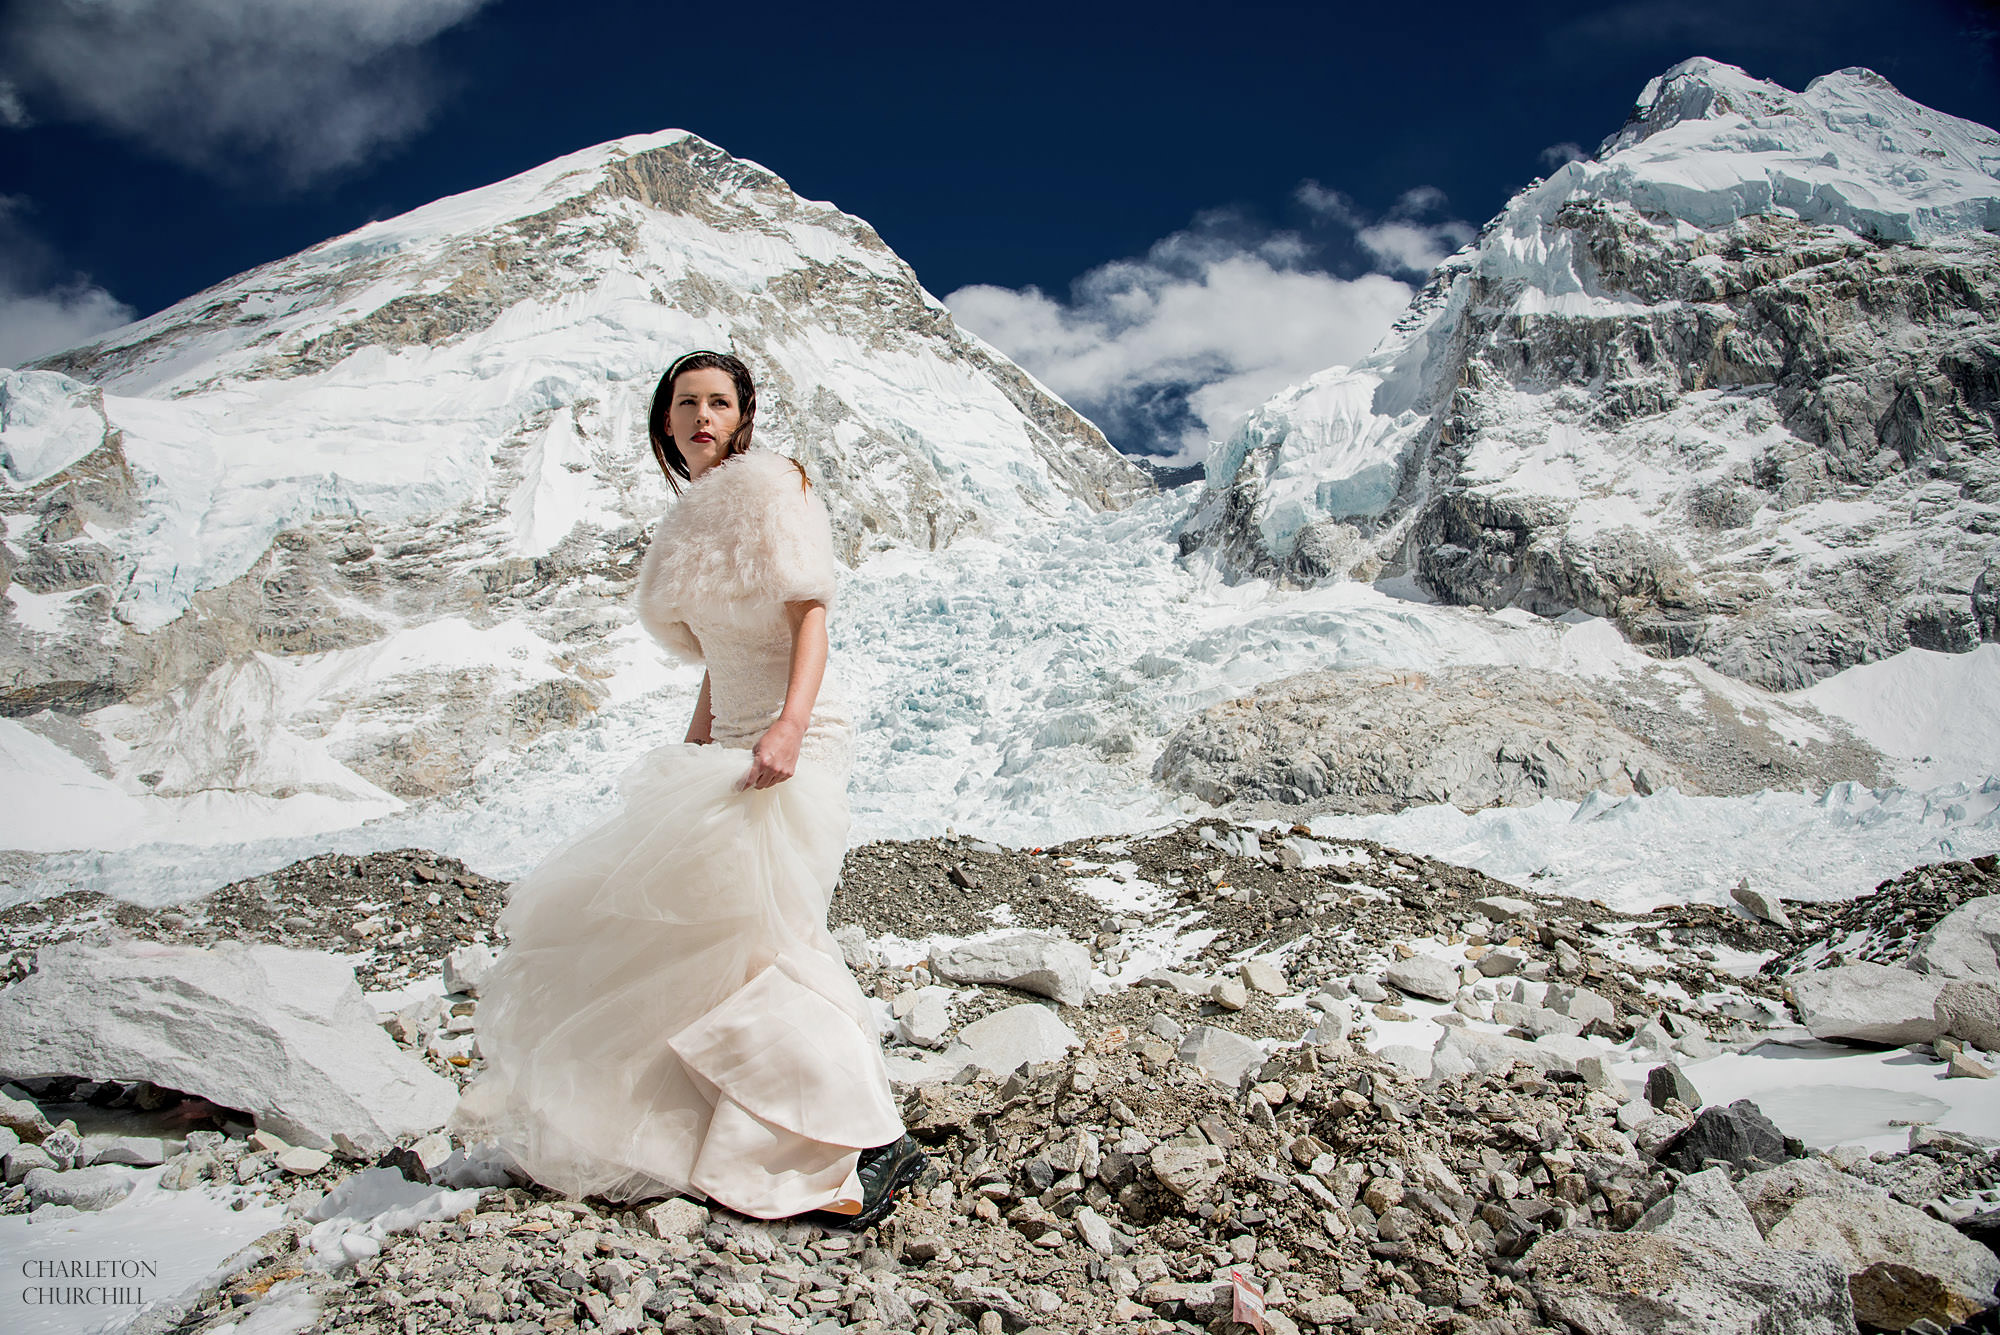 stylish bride at Everest base camp with her wedding dress in front of the khumbu ice-fall